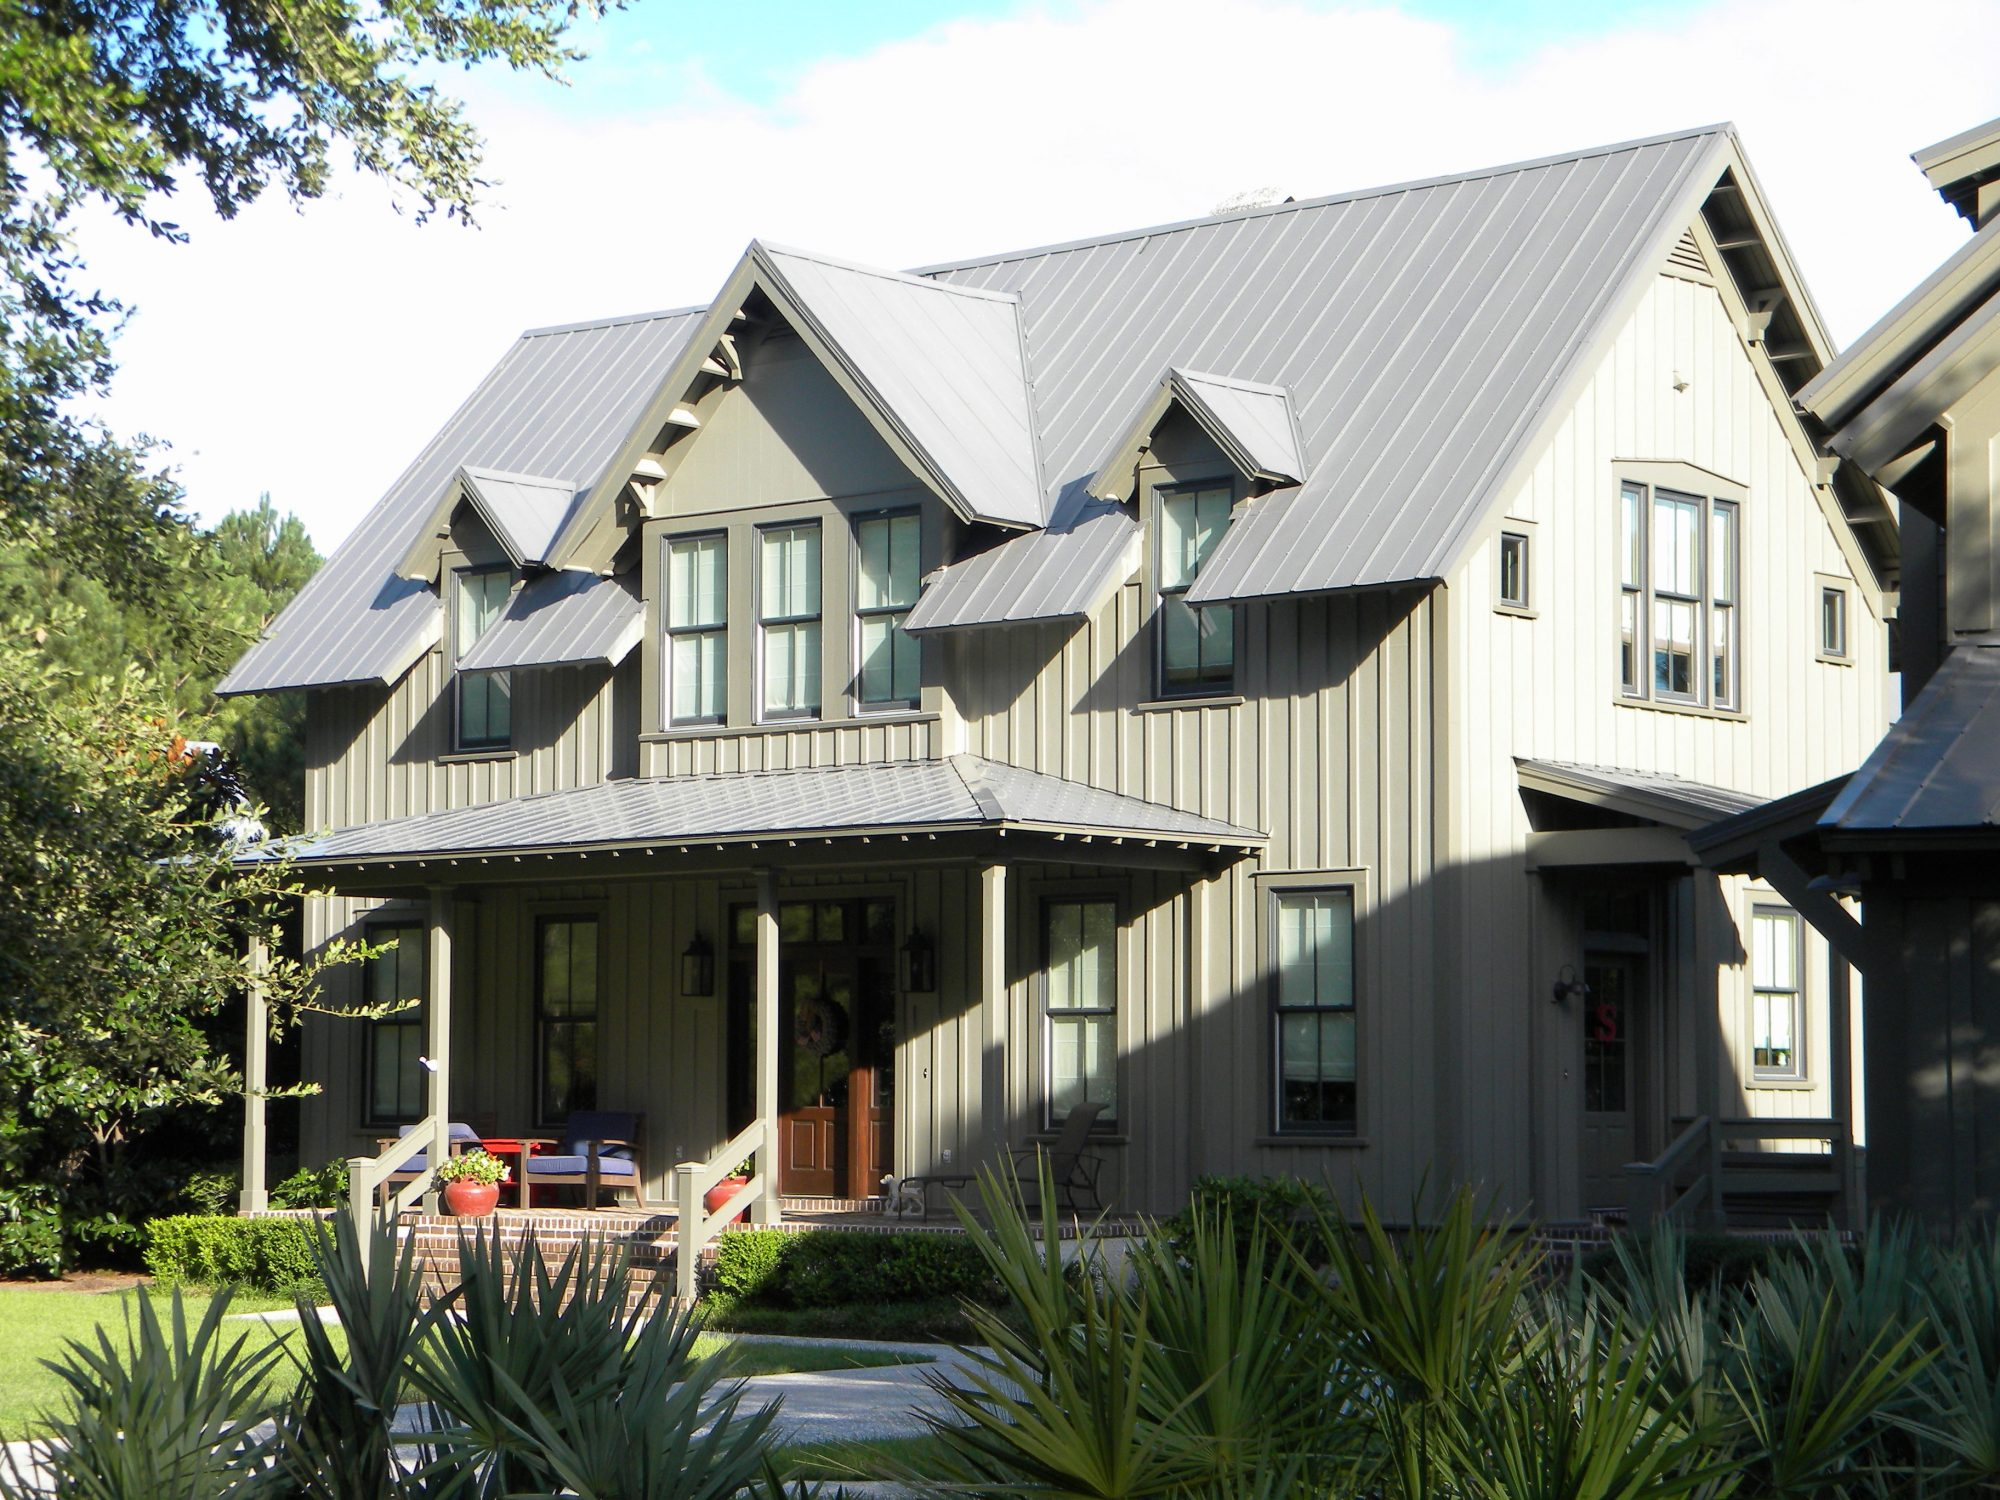 Home Exterior with Clapboard